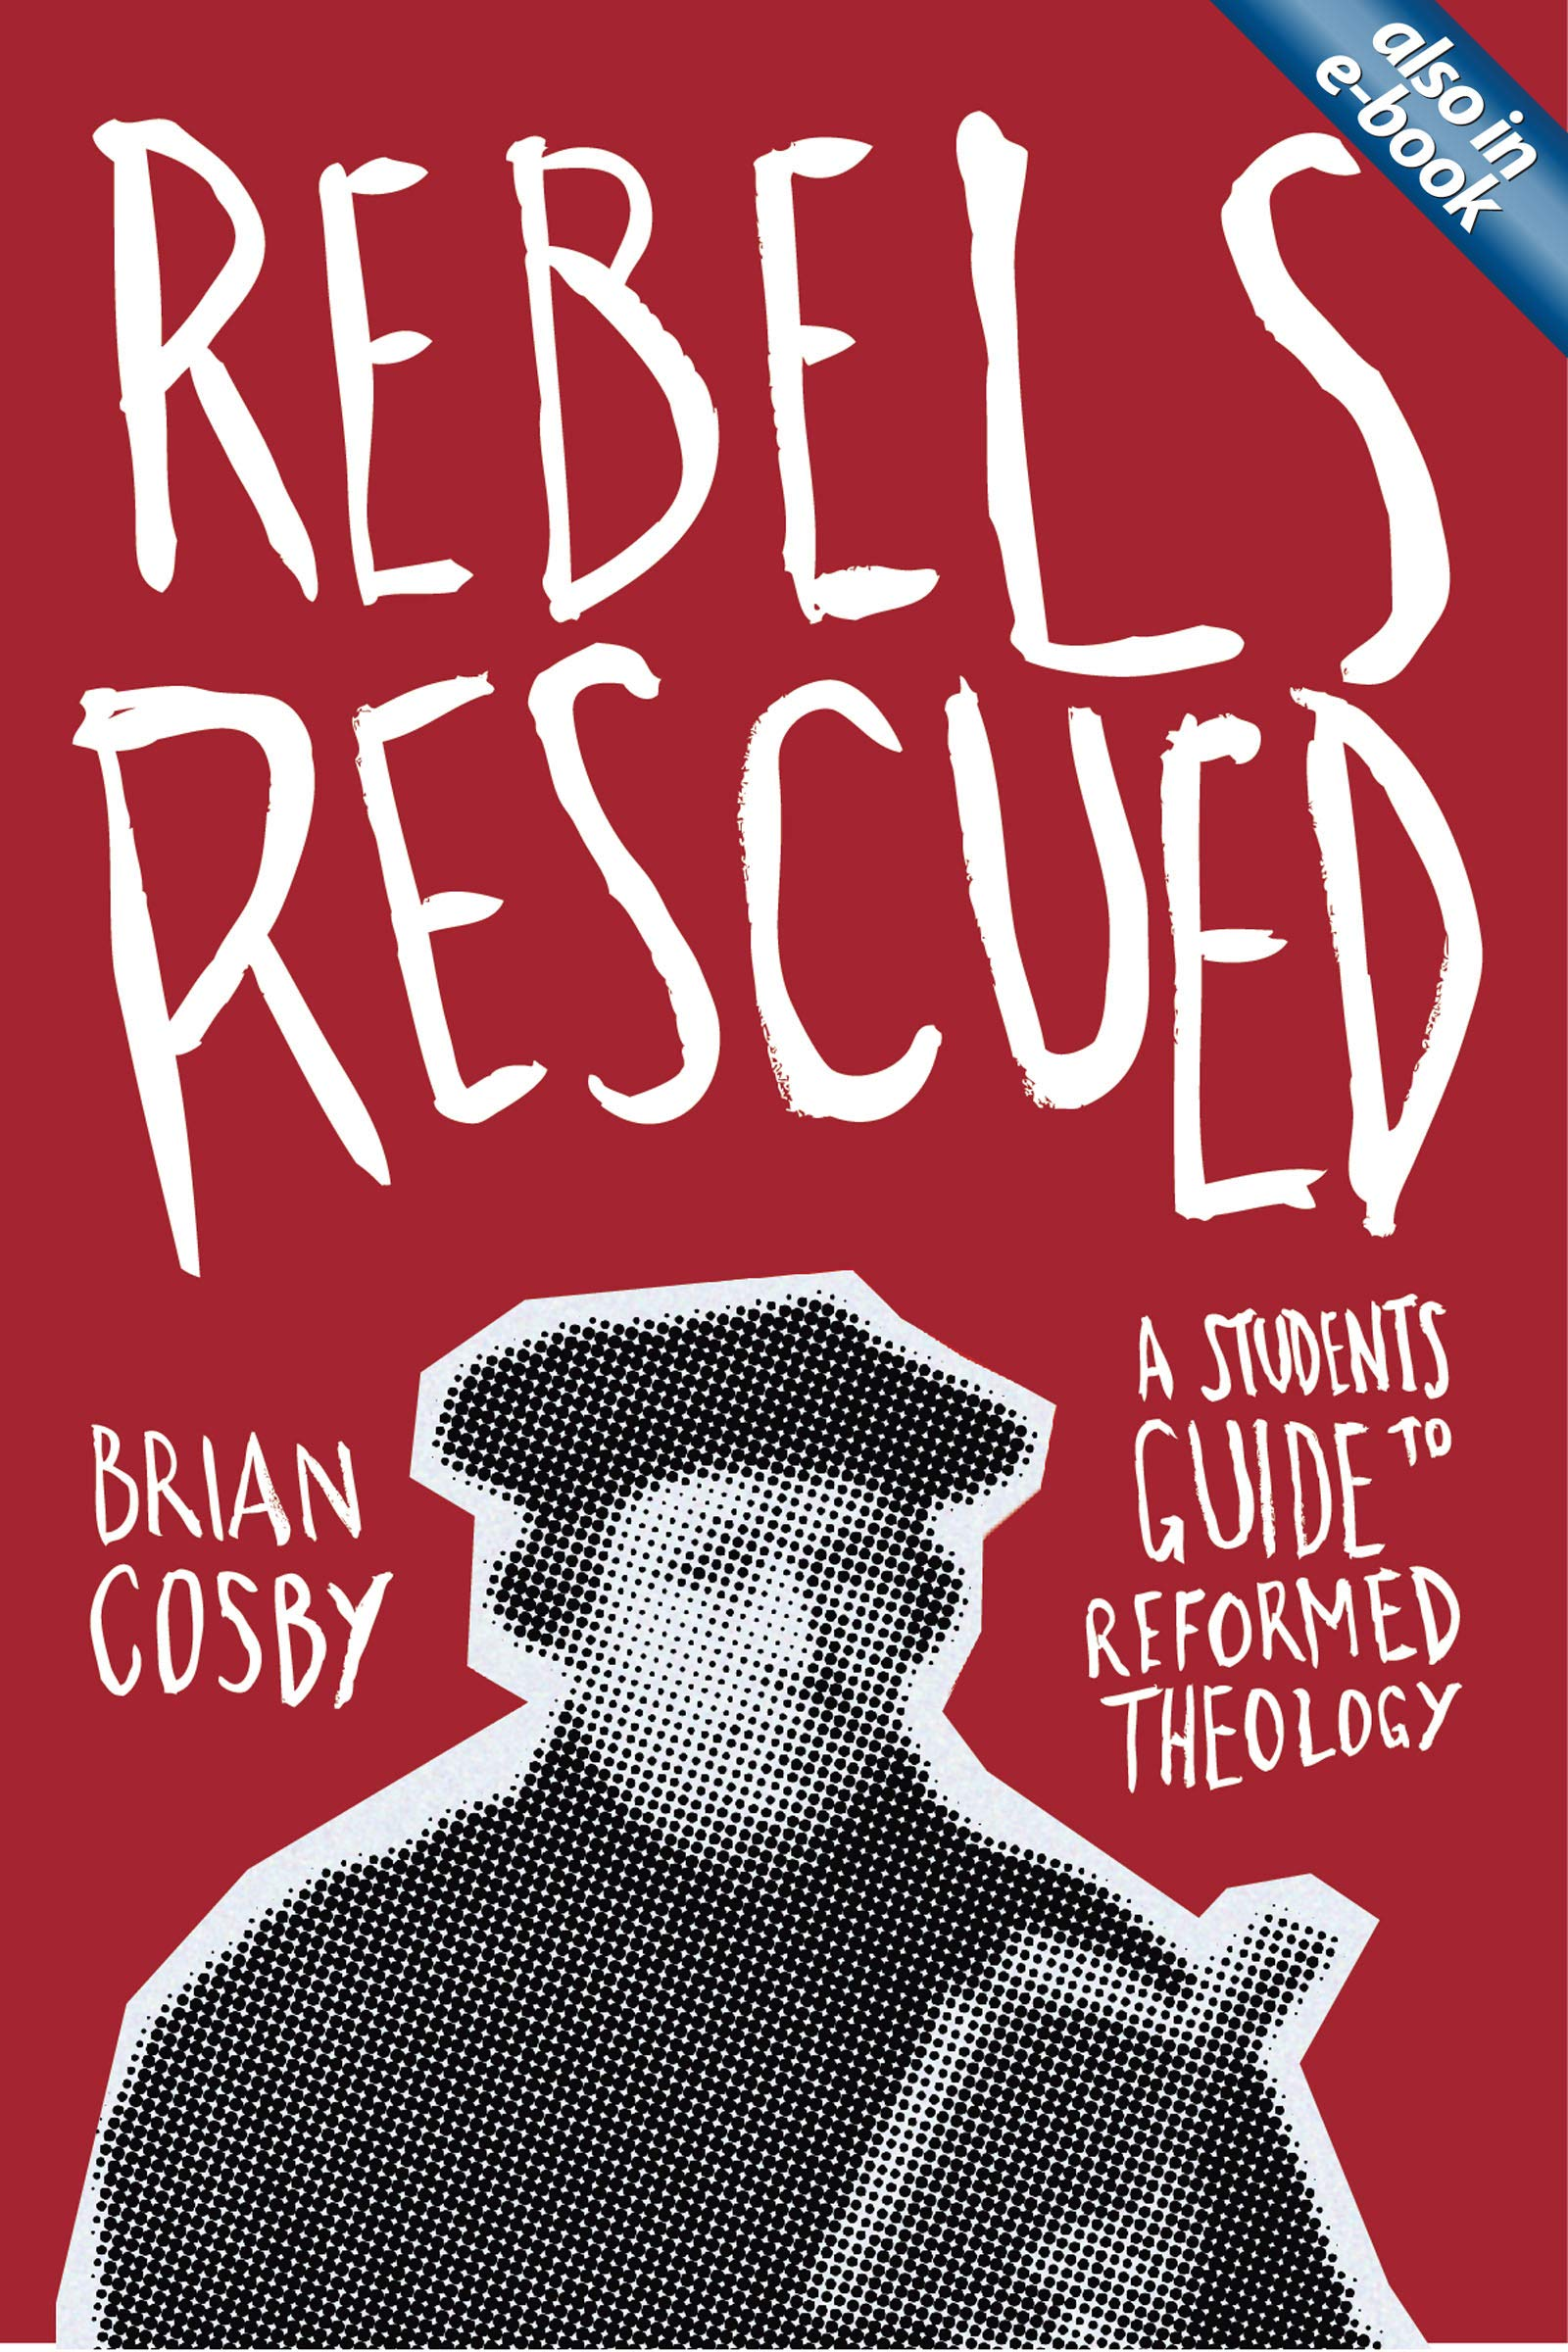 Download Rebels Rescued: A Student's Guide to Reformed Theology PDF